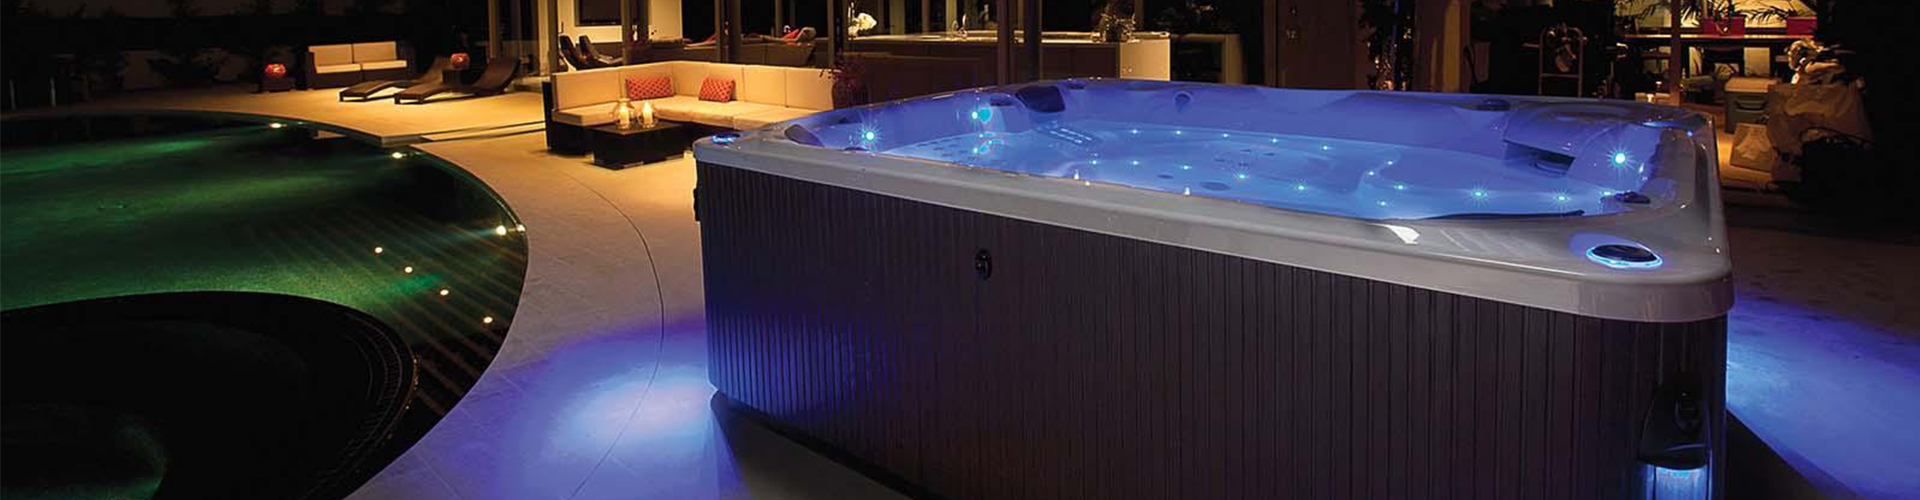 The Art of Hot Tub Relaxation